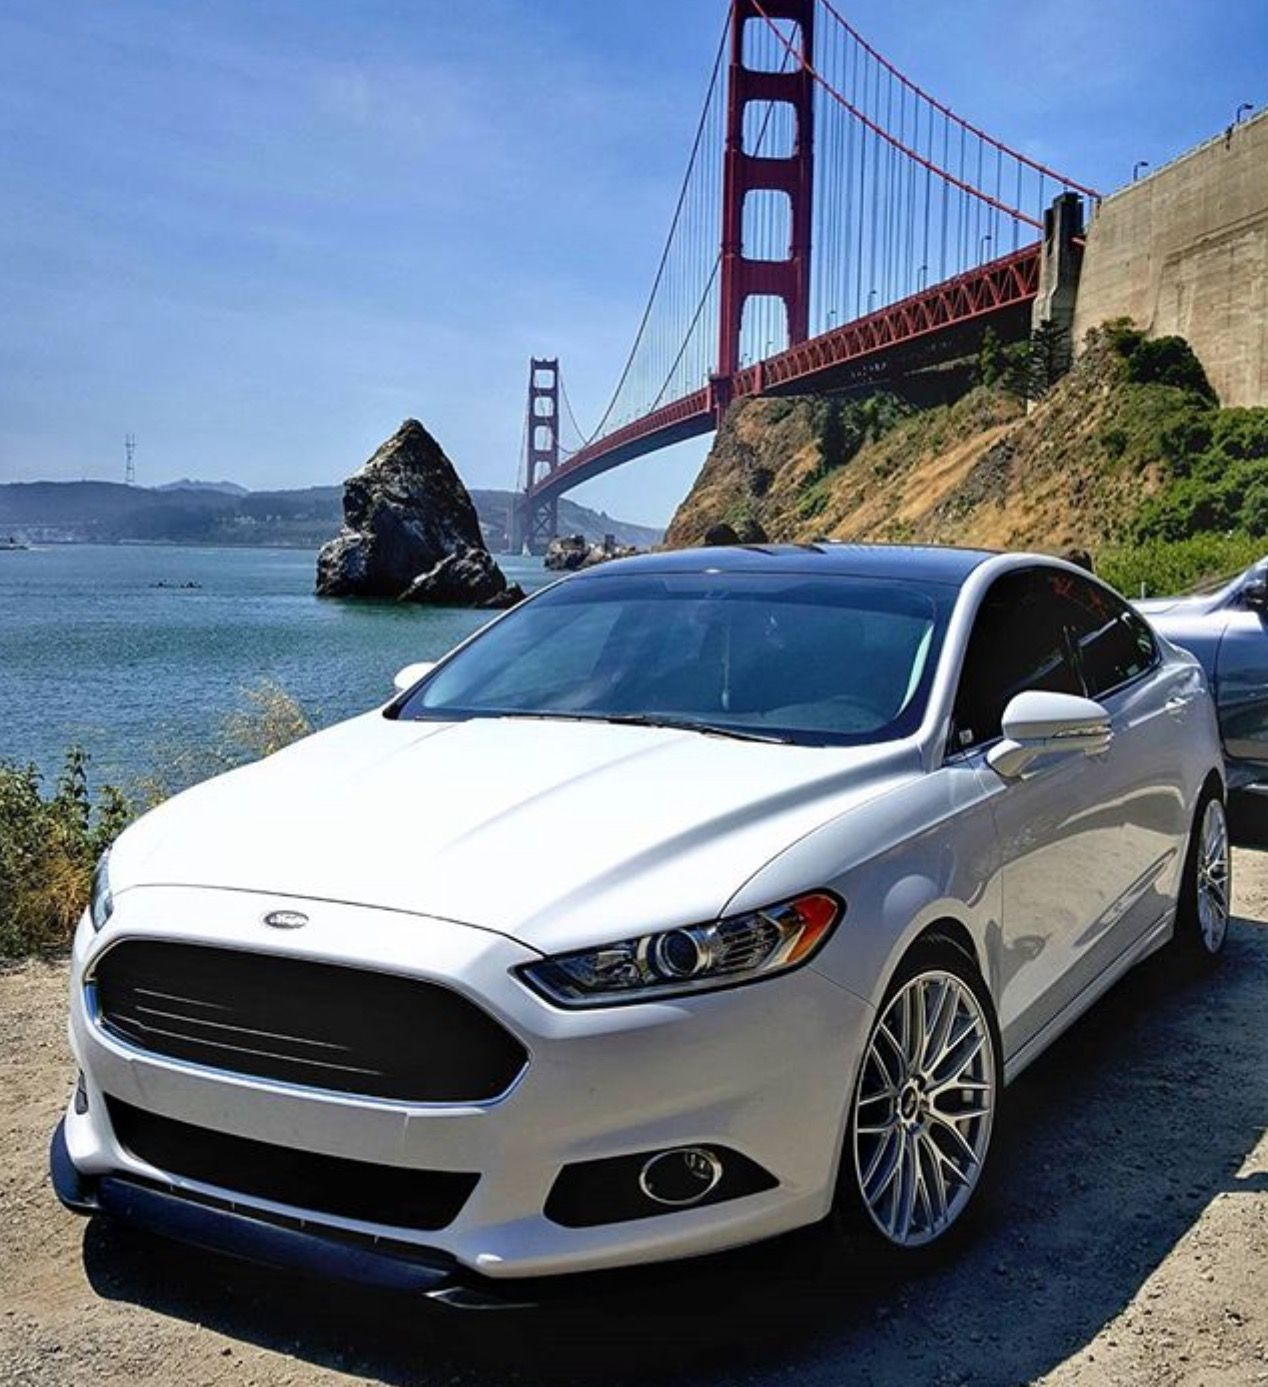 Ford Fusion Carro Ford Fusion Ford Fusion Custom Ford Fusion